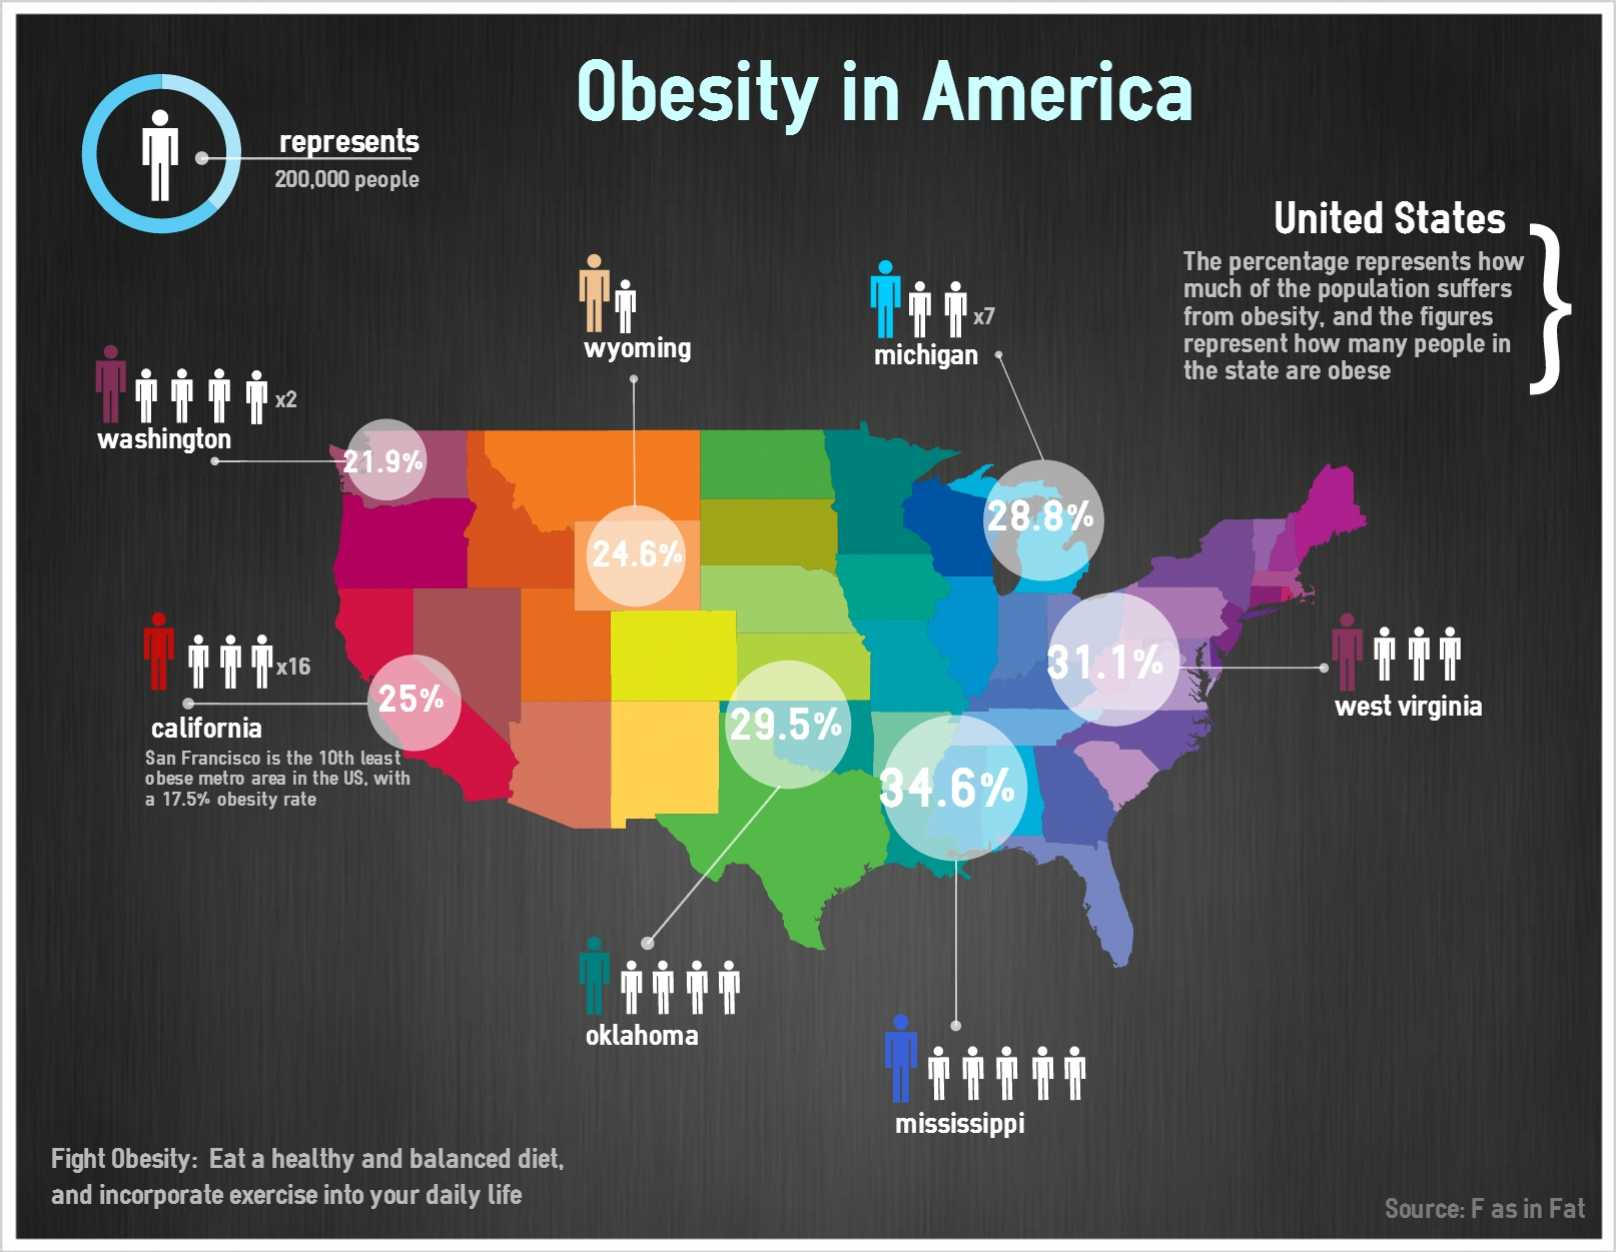 excessive fat accumulation essay Definition overweight and obesity are defined as abnormal or excessive fat accumulation that may impair health body mass index bmi is a simple index of.